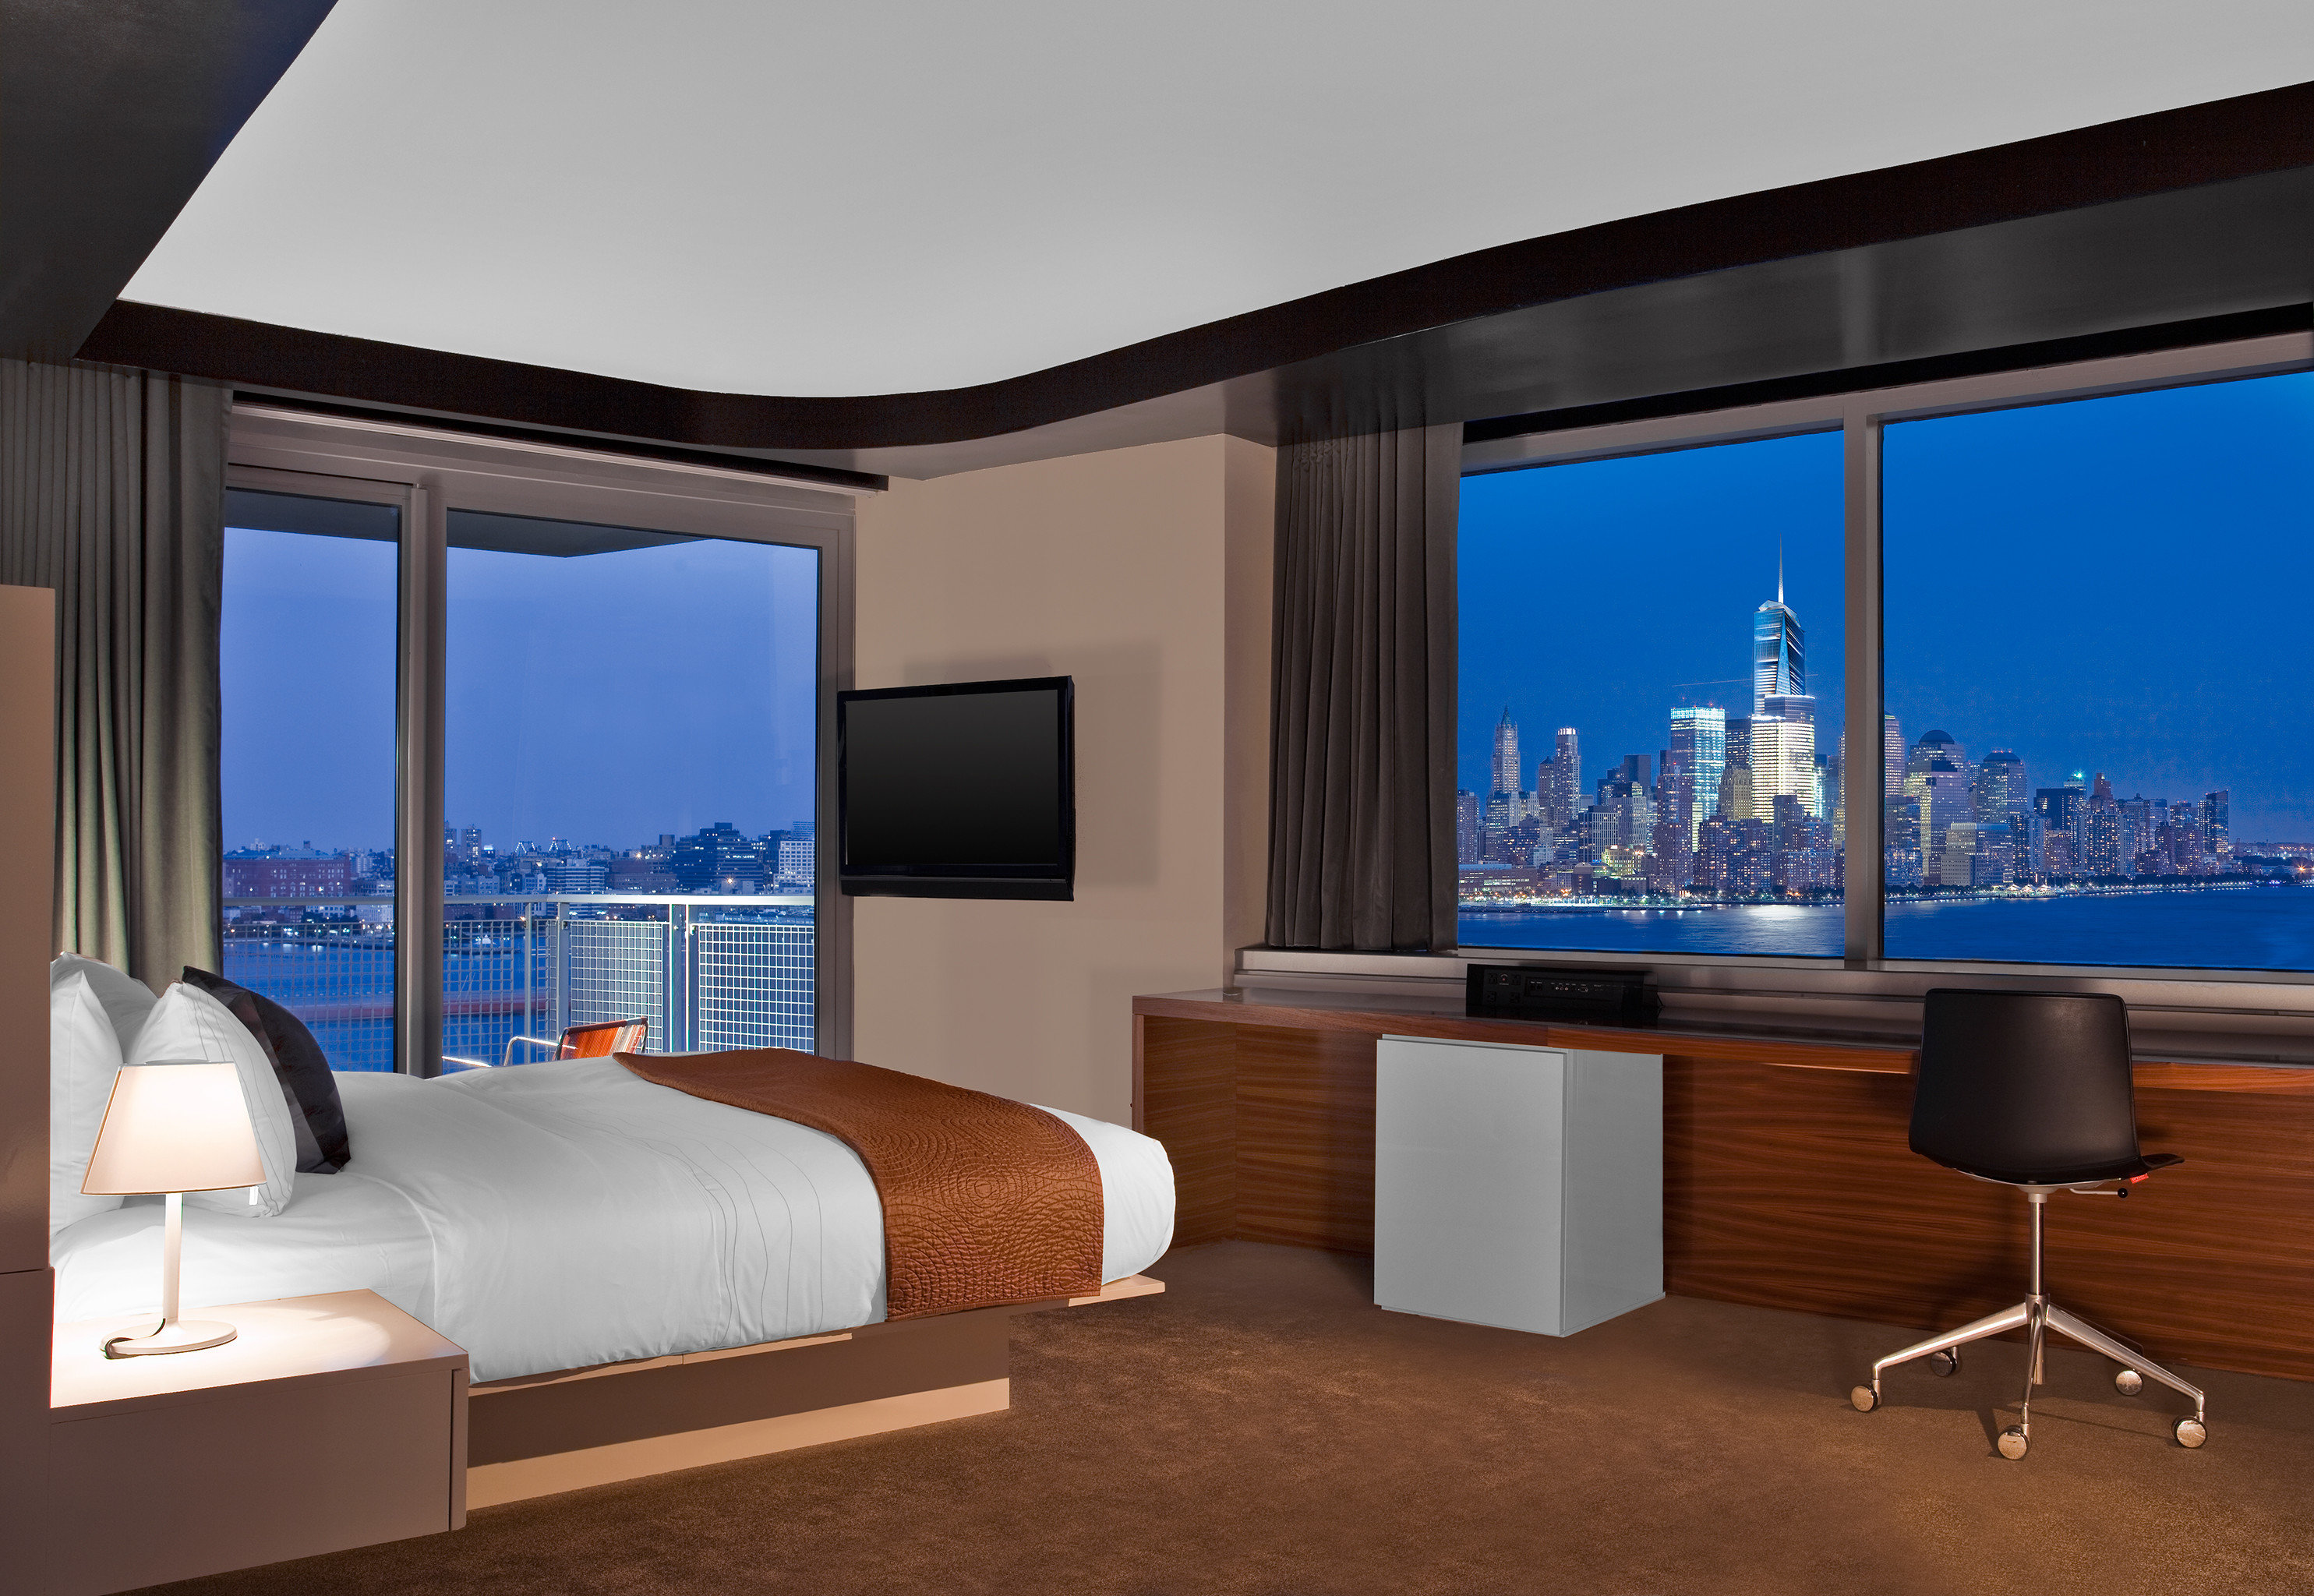 Bedroom City Luxury Modern Scenic Views Property Living Room Home Suite Overlooking Flat